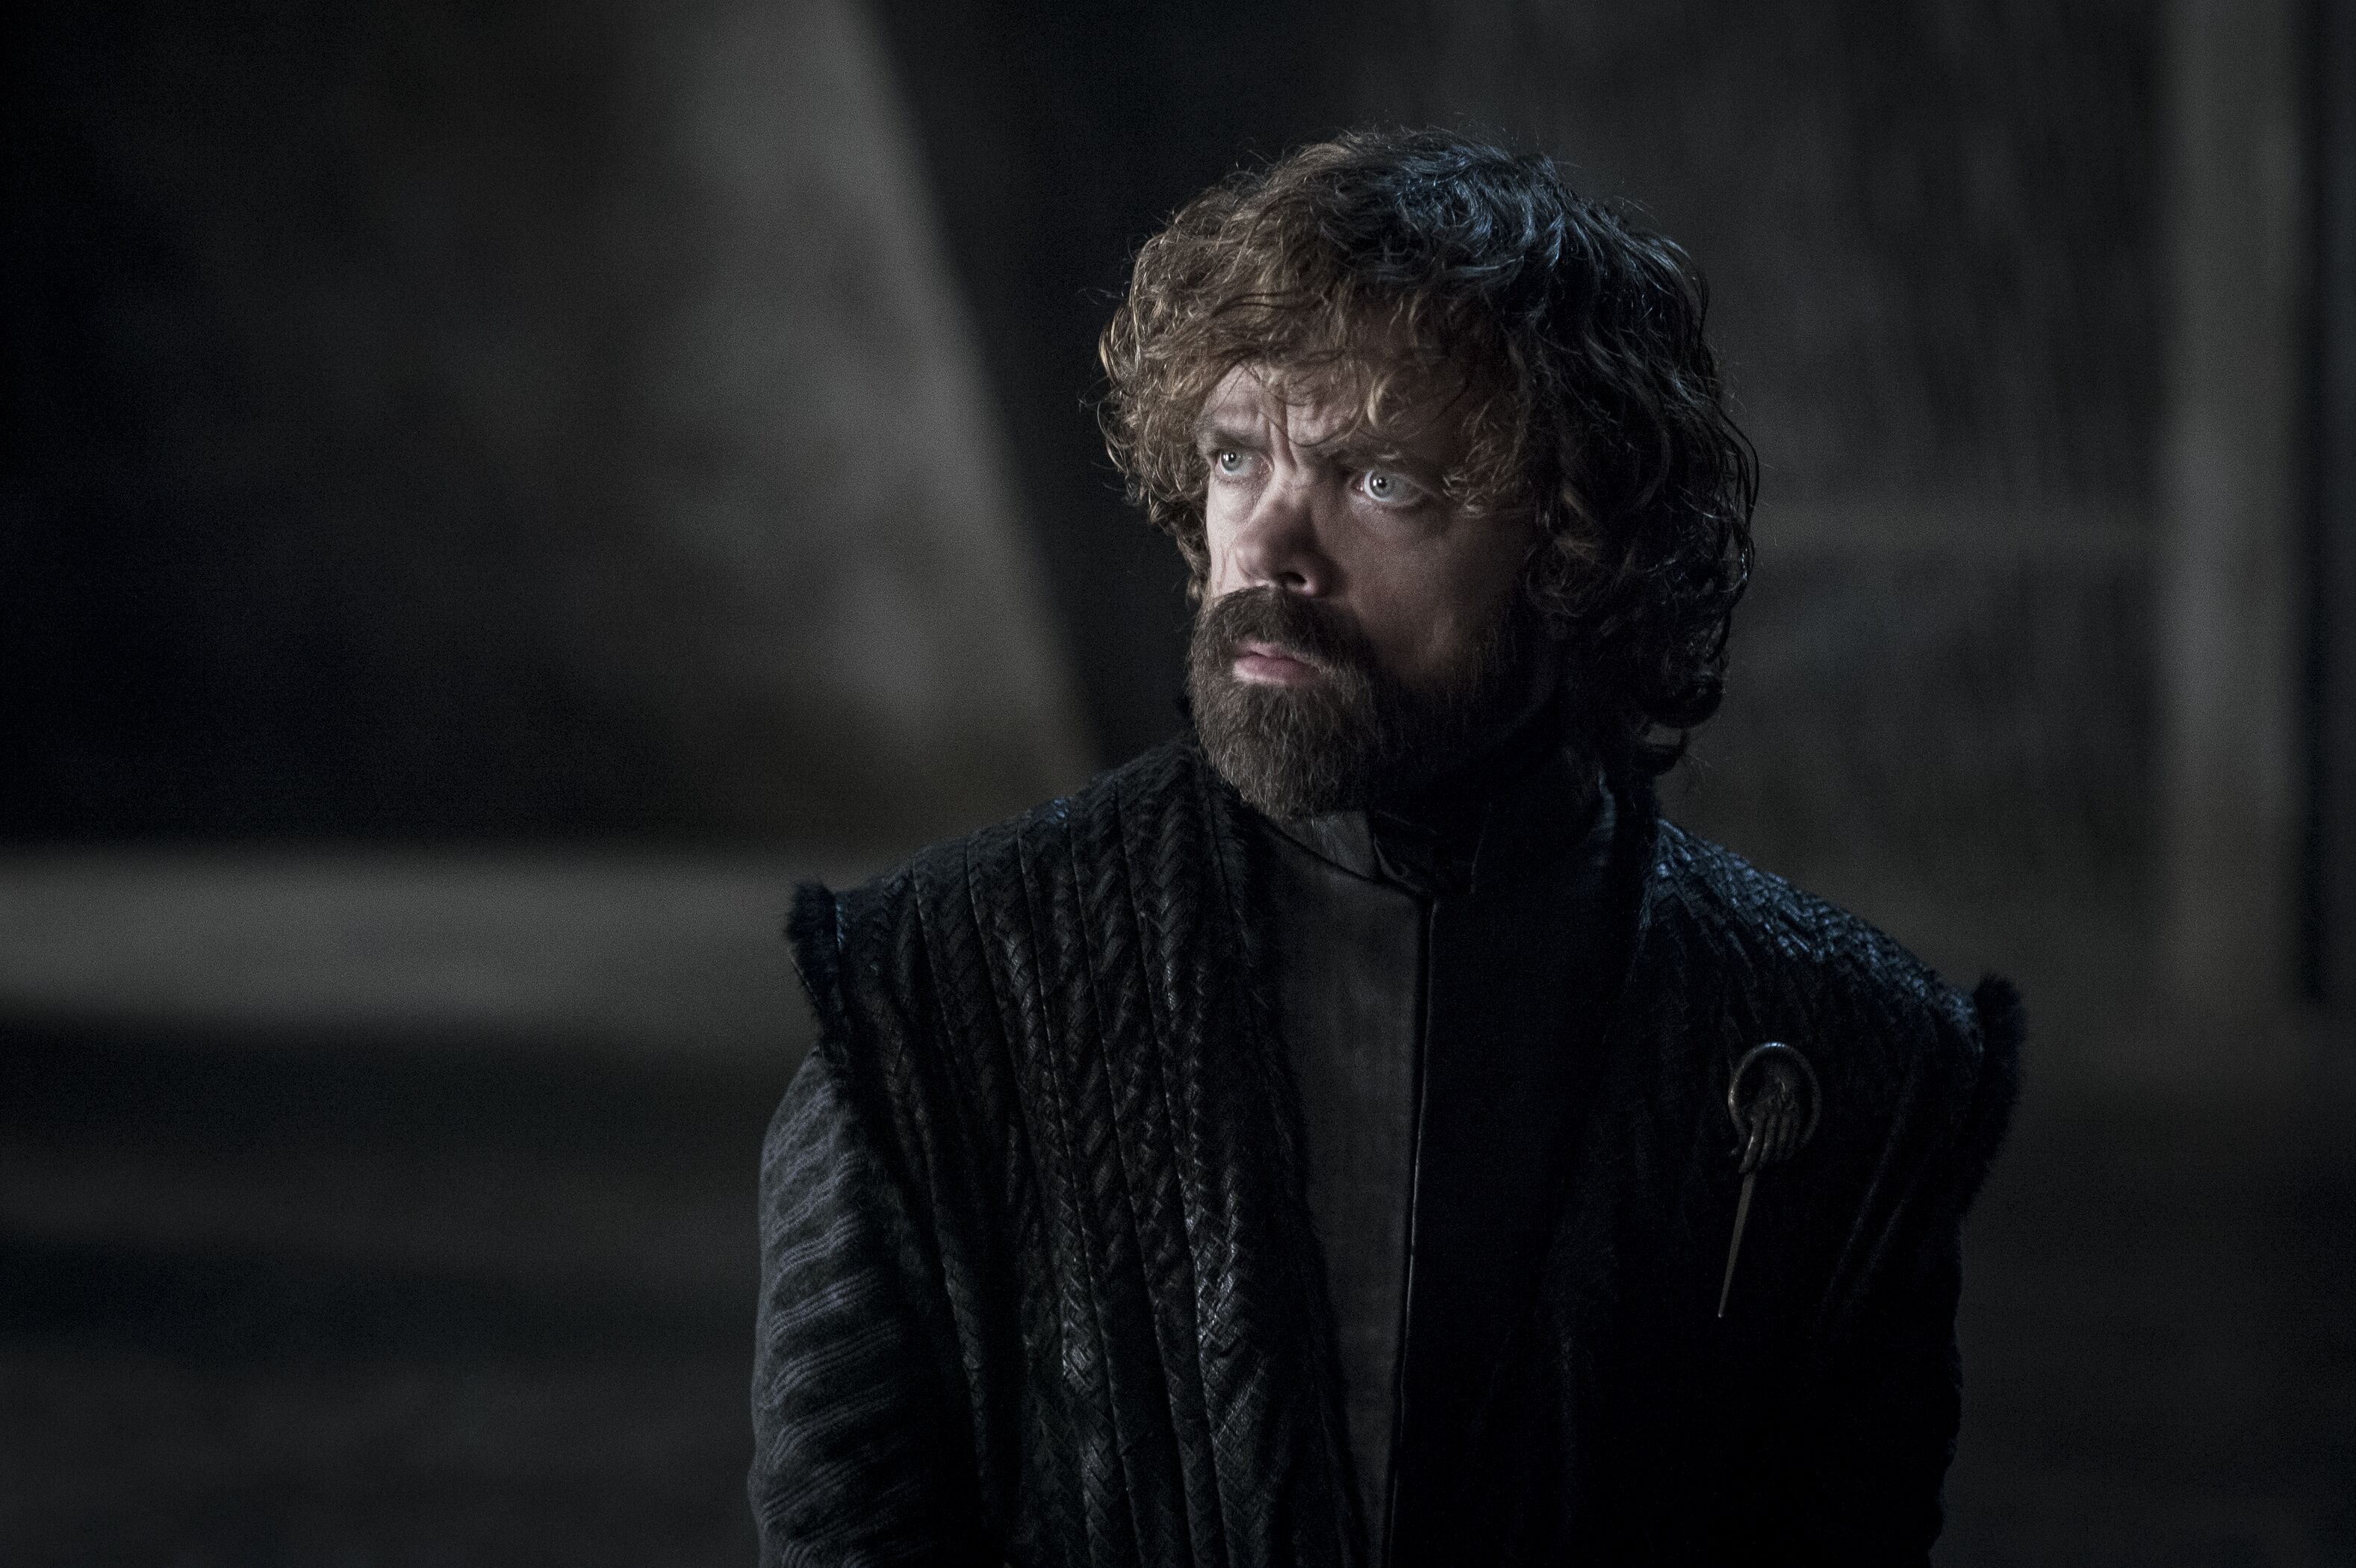 Did Tyrion Lannister survive the Game of Thrones finale?